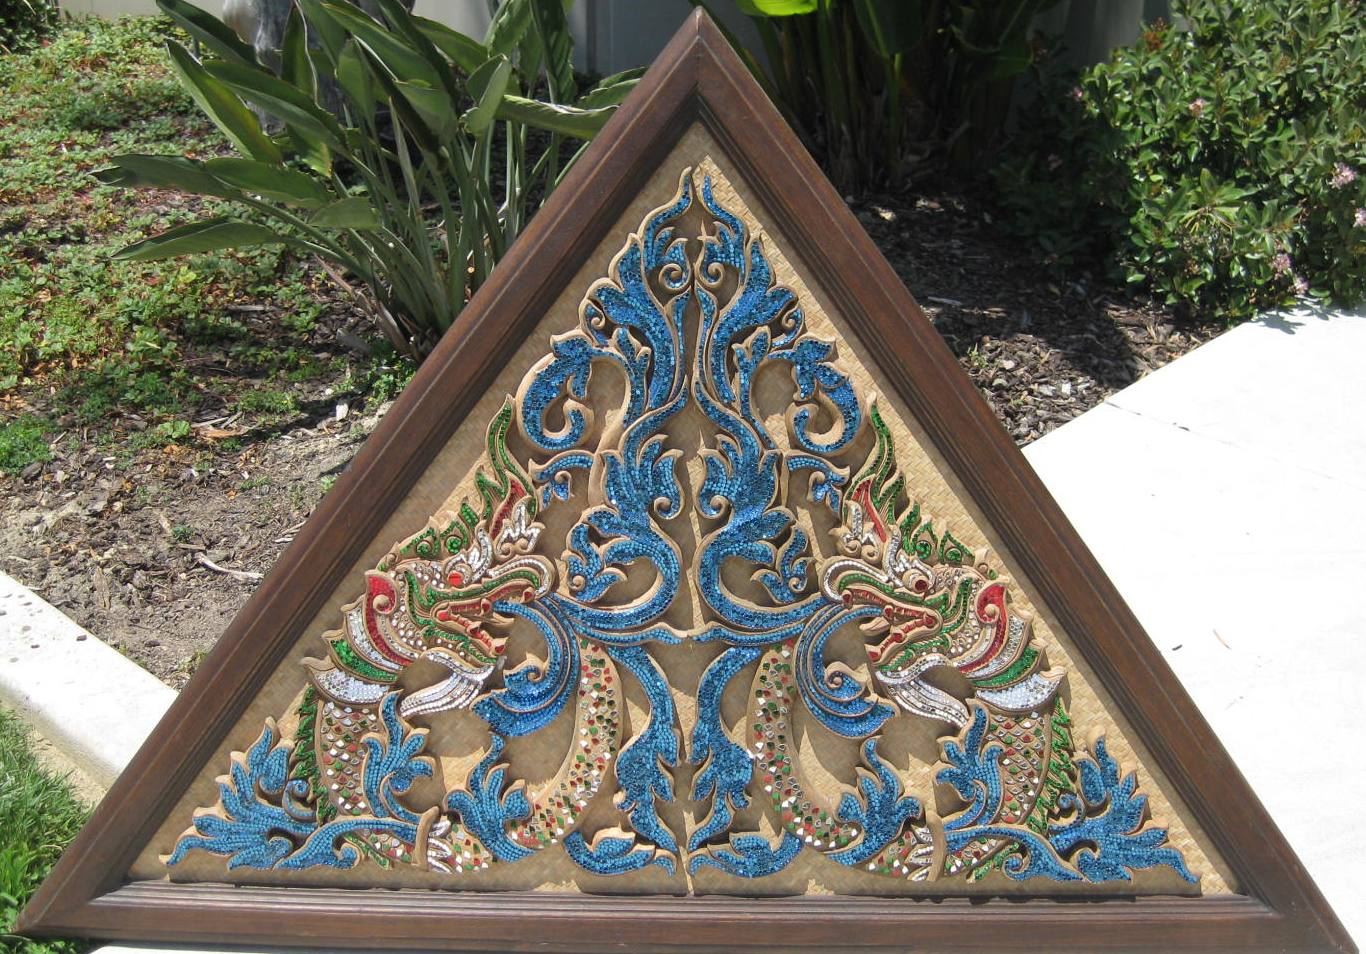 Triangular Naga & Decorative Glass Rattan Teak panel